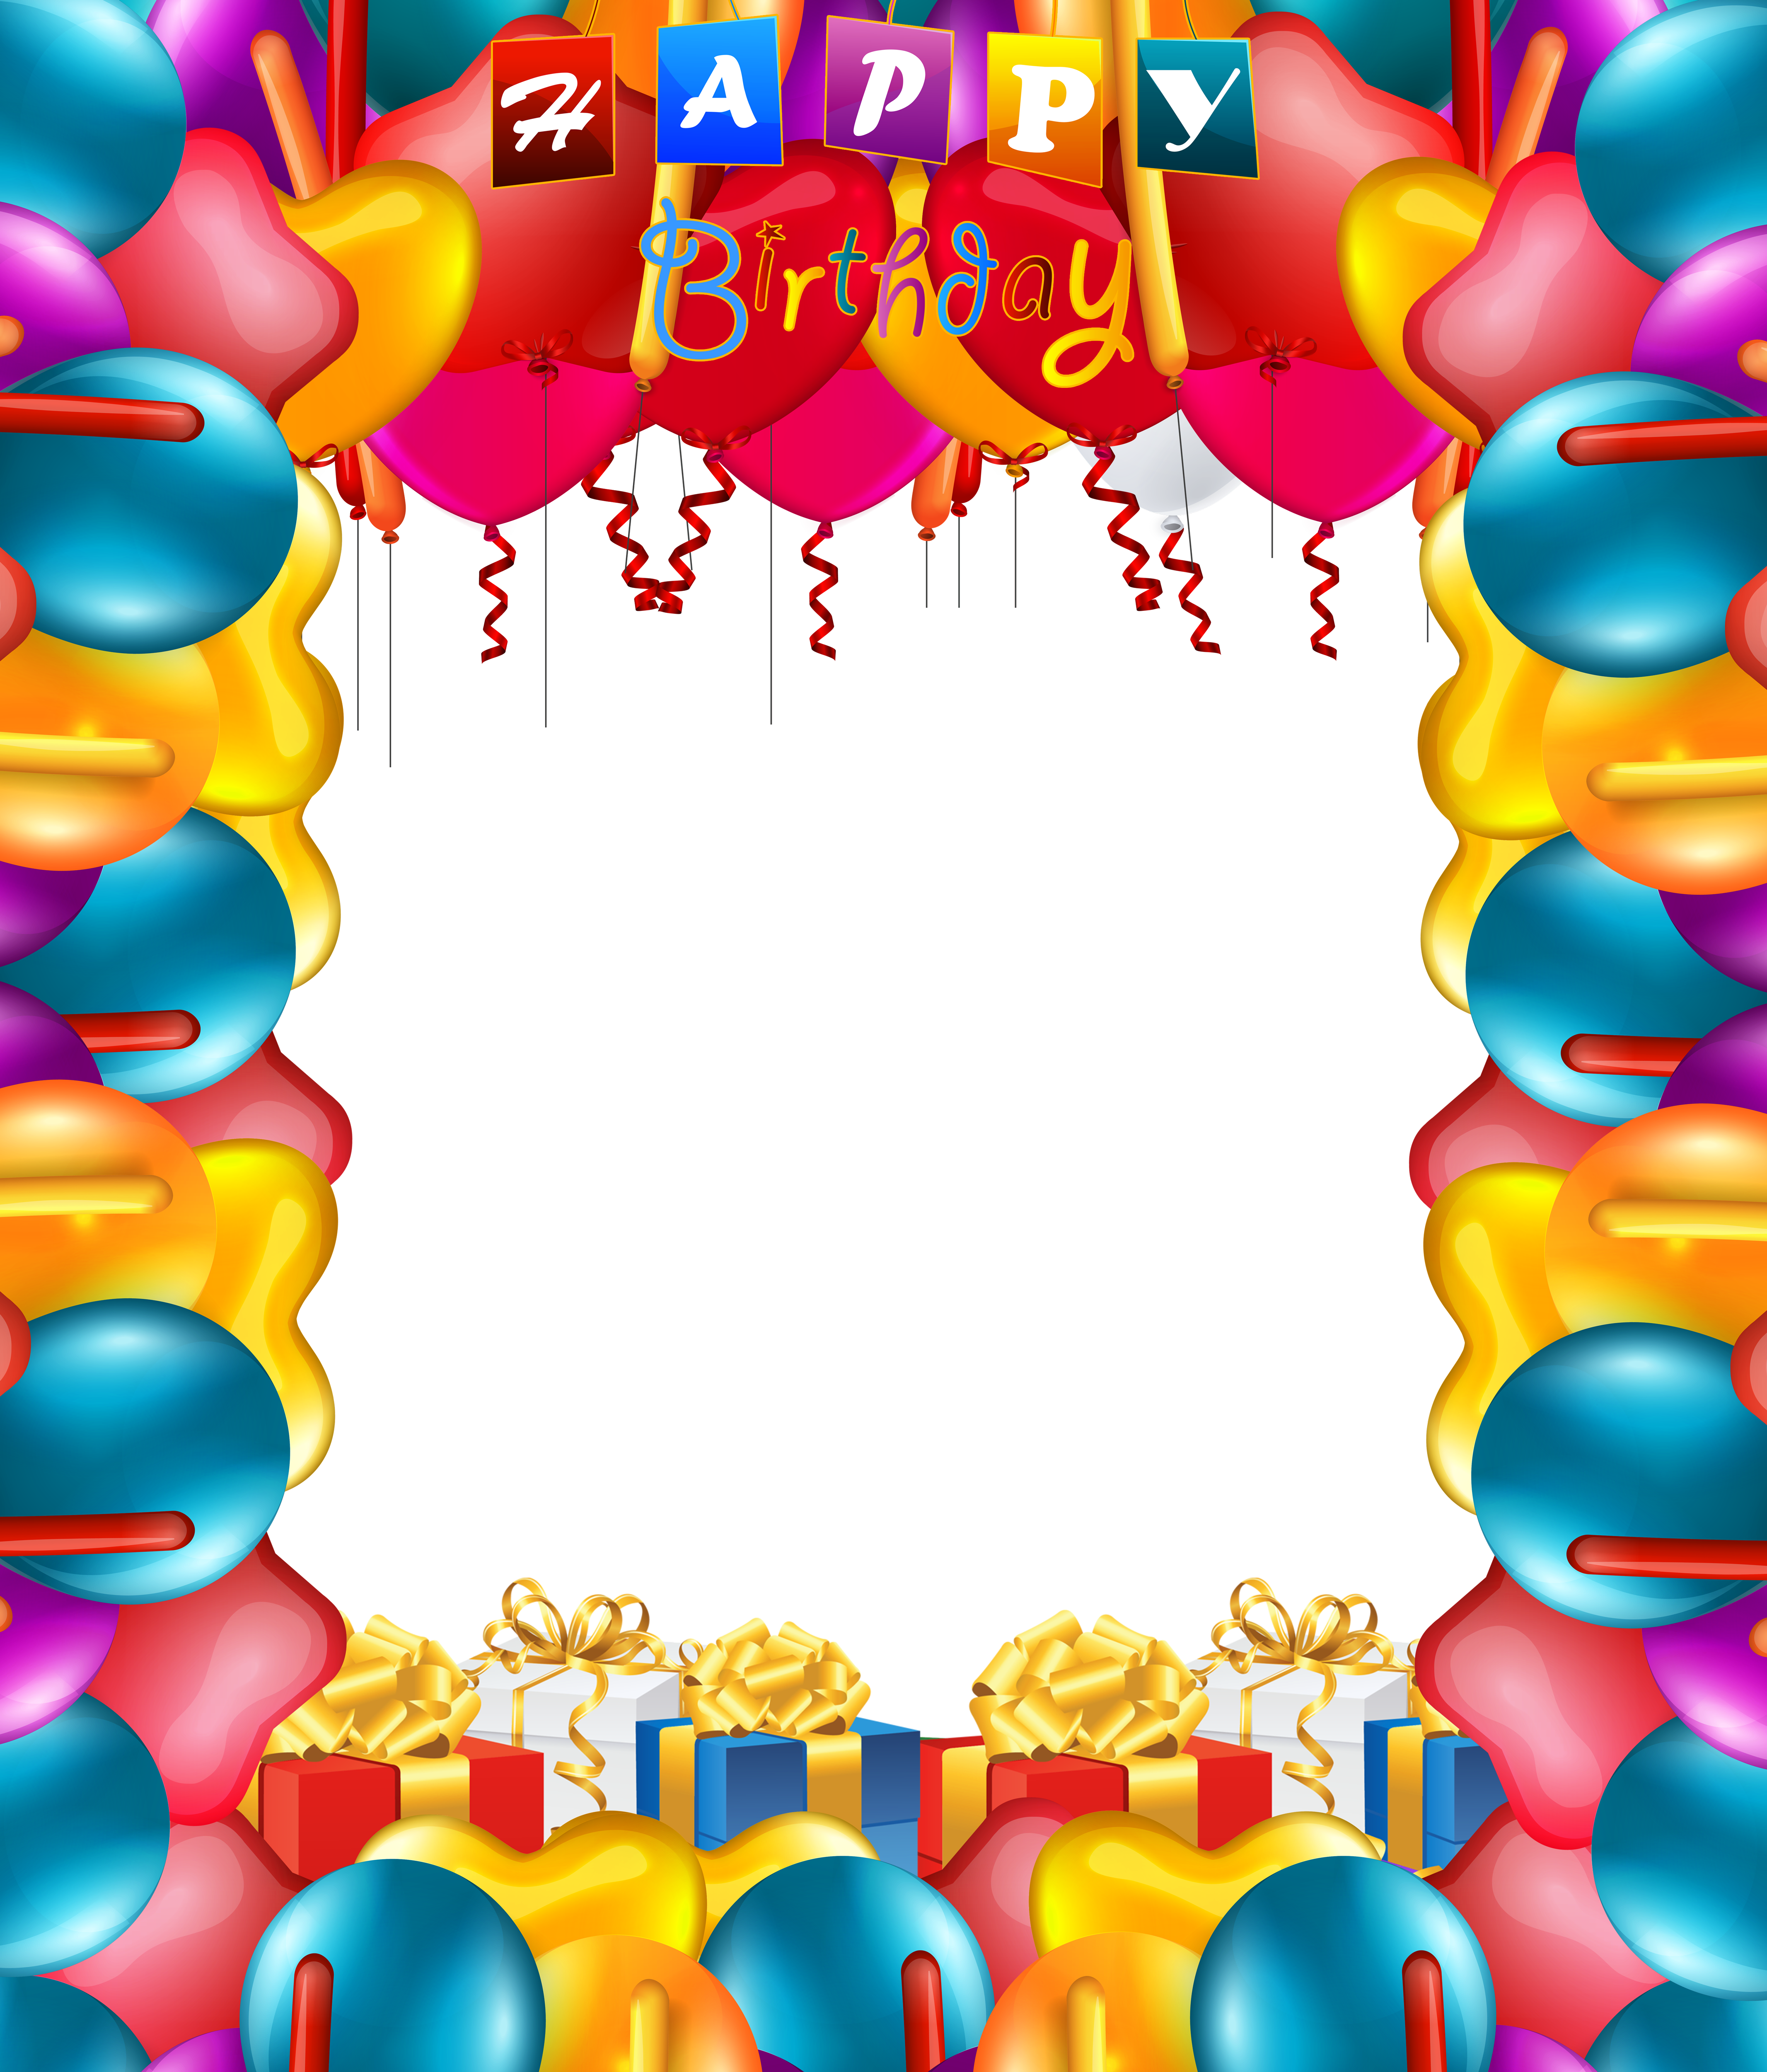 Happy birthday frame png. Balloons transparent places to